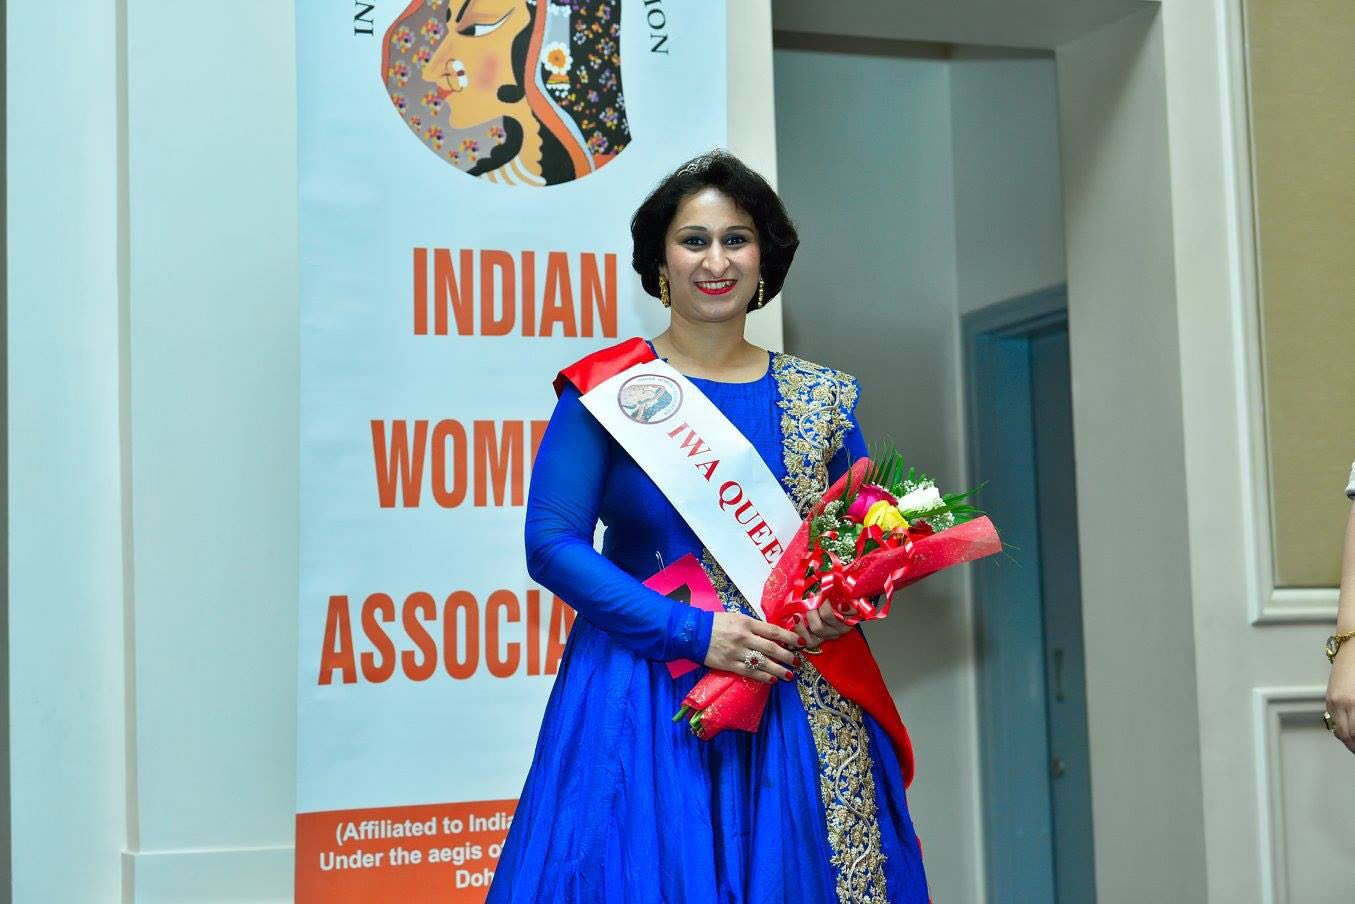 Celebrated Summer fiesta and iwa beauty pageant